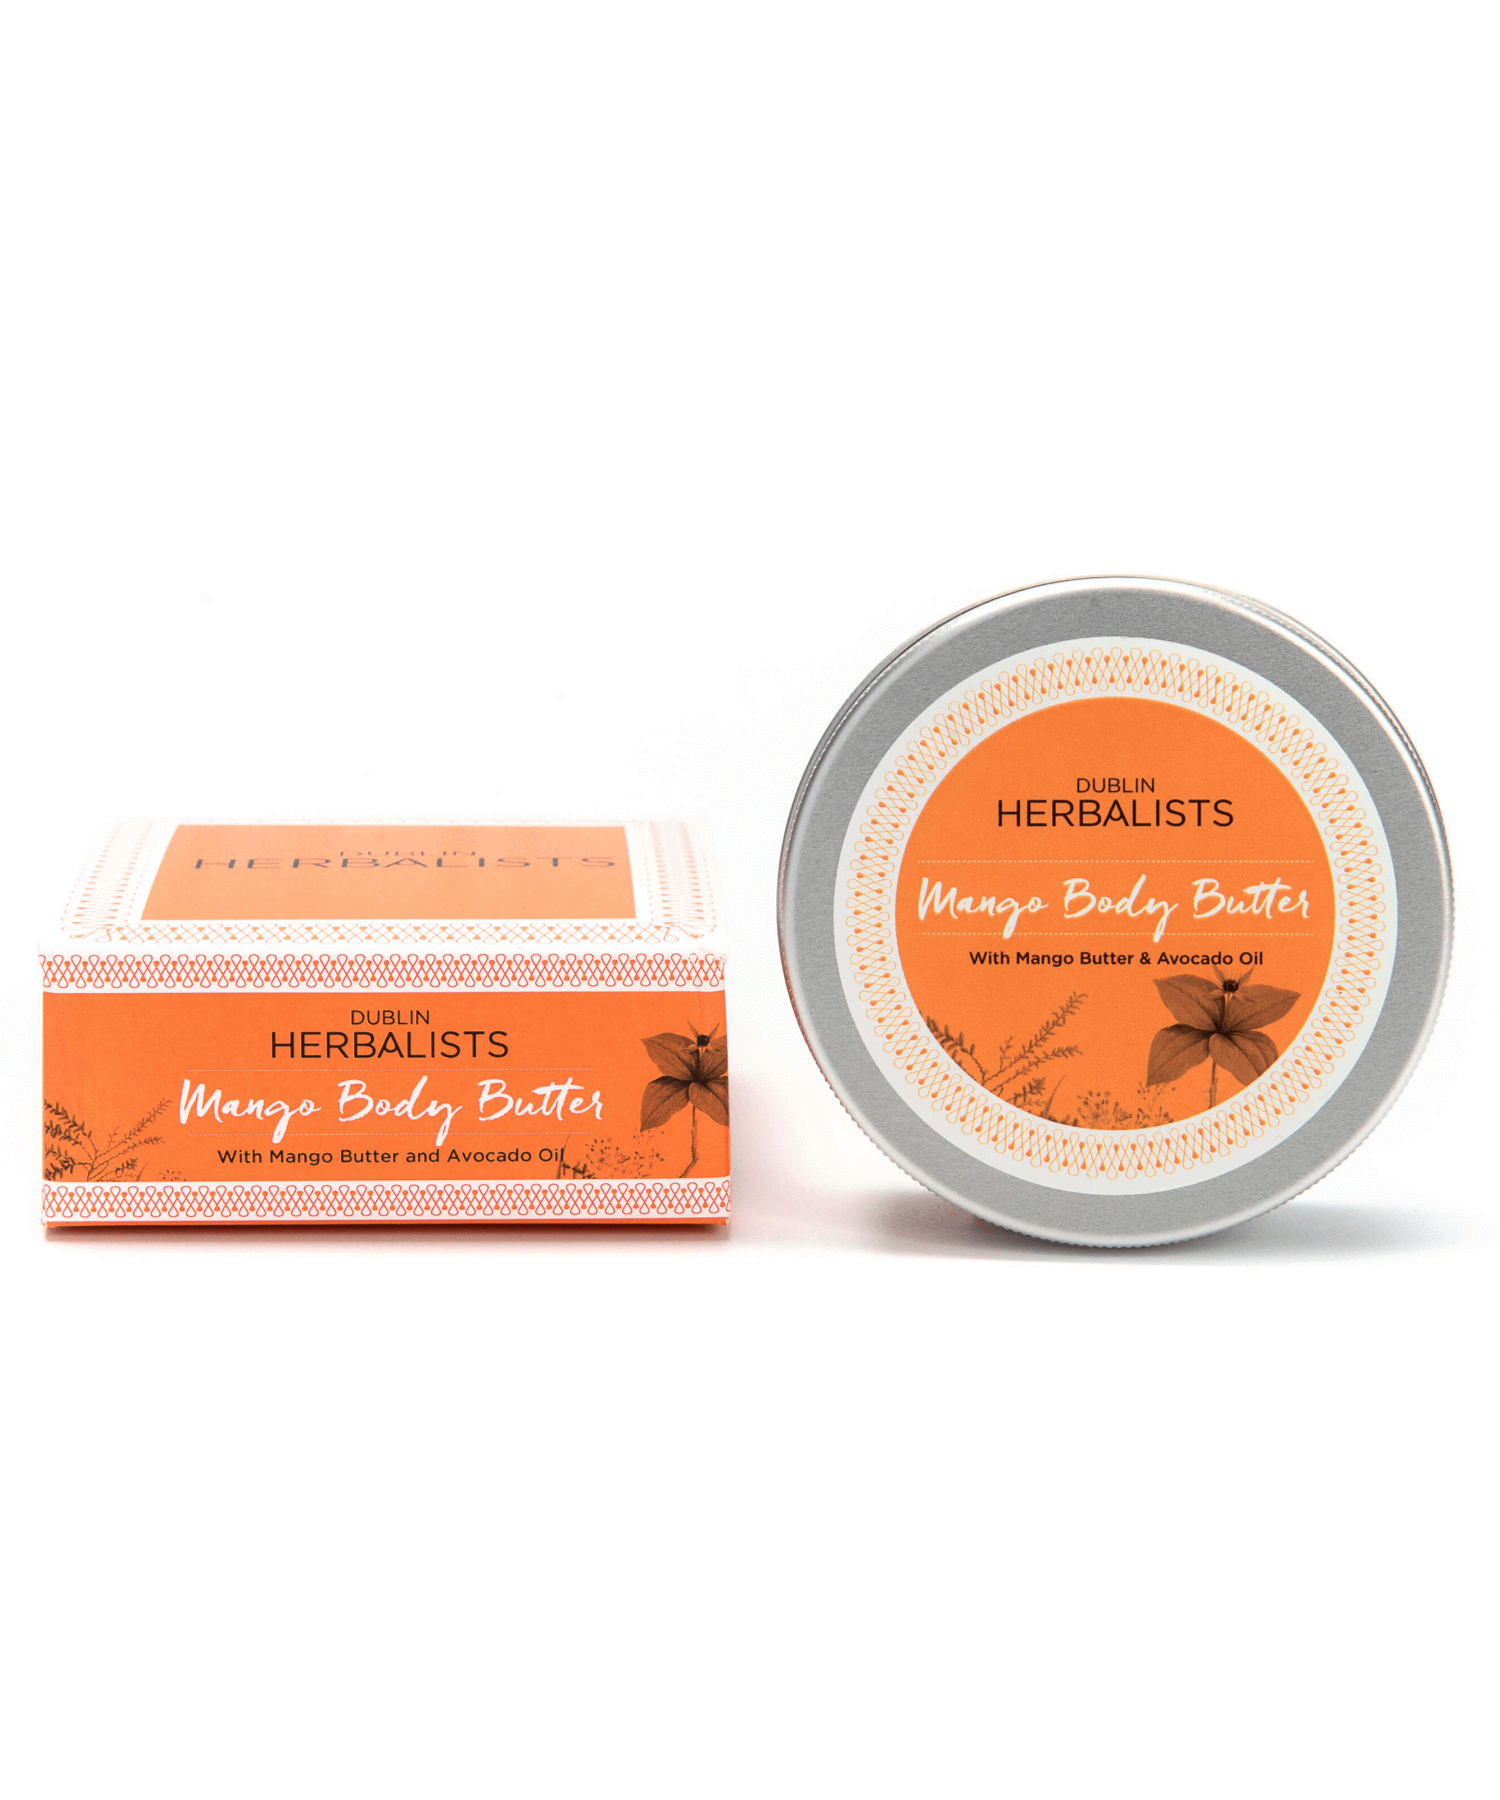 Mango Body Butter - [Dublin Herbalists] - Skincare & Beauty - Irish Gifts